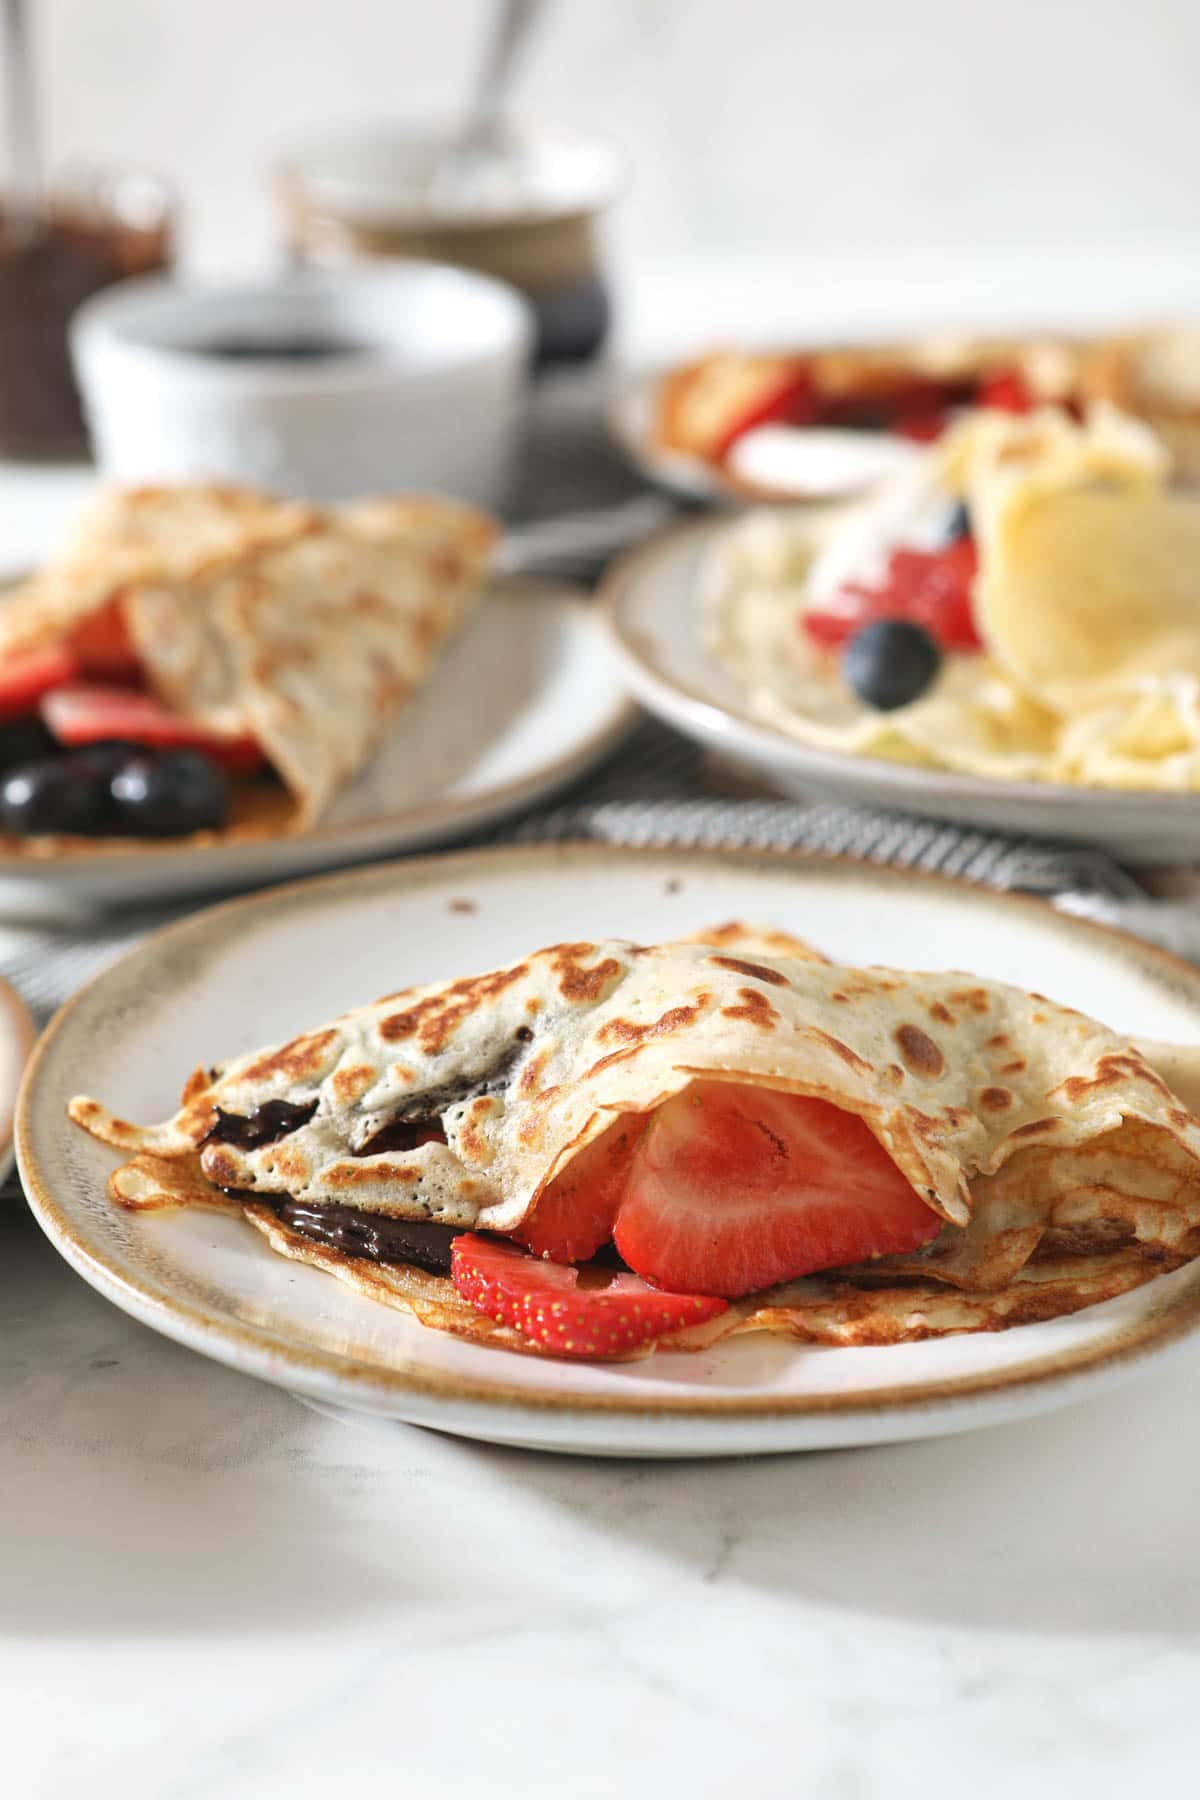 sourdough crepes with berries on plate